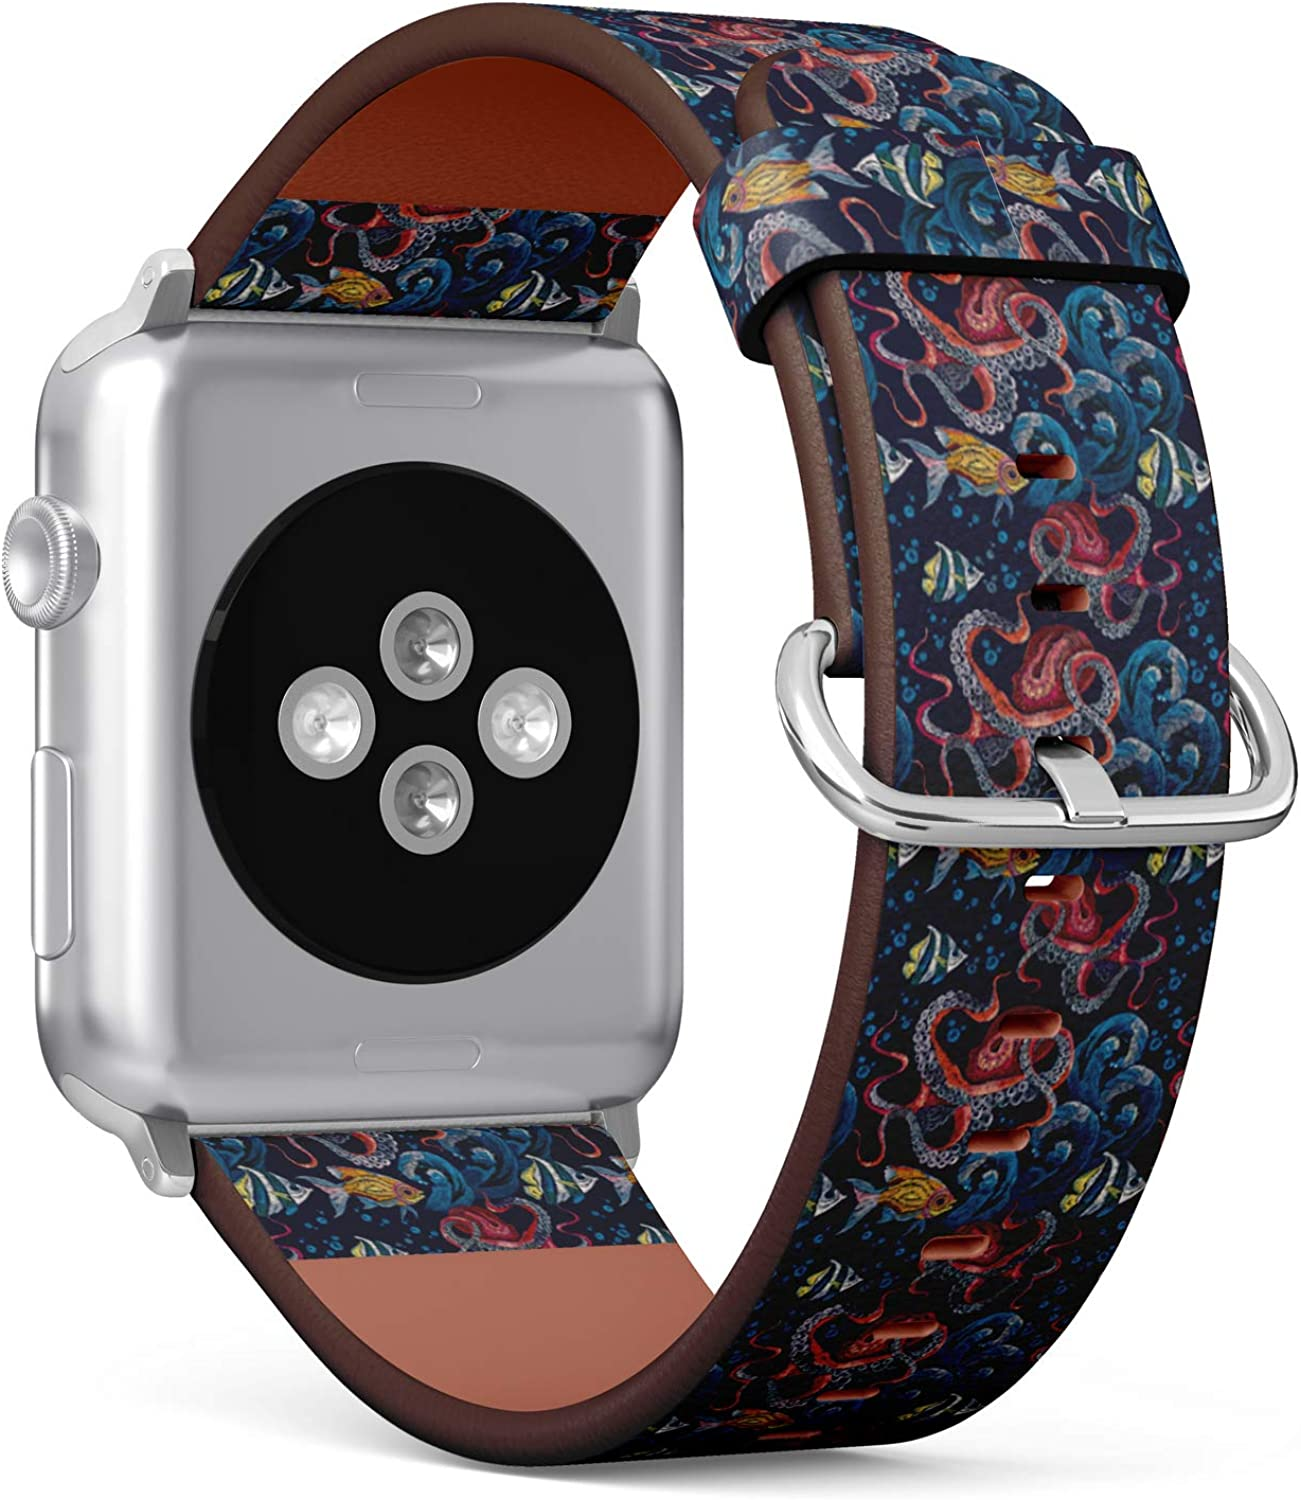 (Fashionable Embroidery Octopus, sea Wave and Tropical Fishes Pattern.) Patterned Leather Wristband Strap for Apple Watch Series 4/3/2/1 gen,Replacement for iWatch 38mm / 40mm Bands